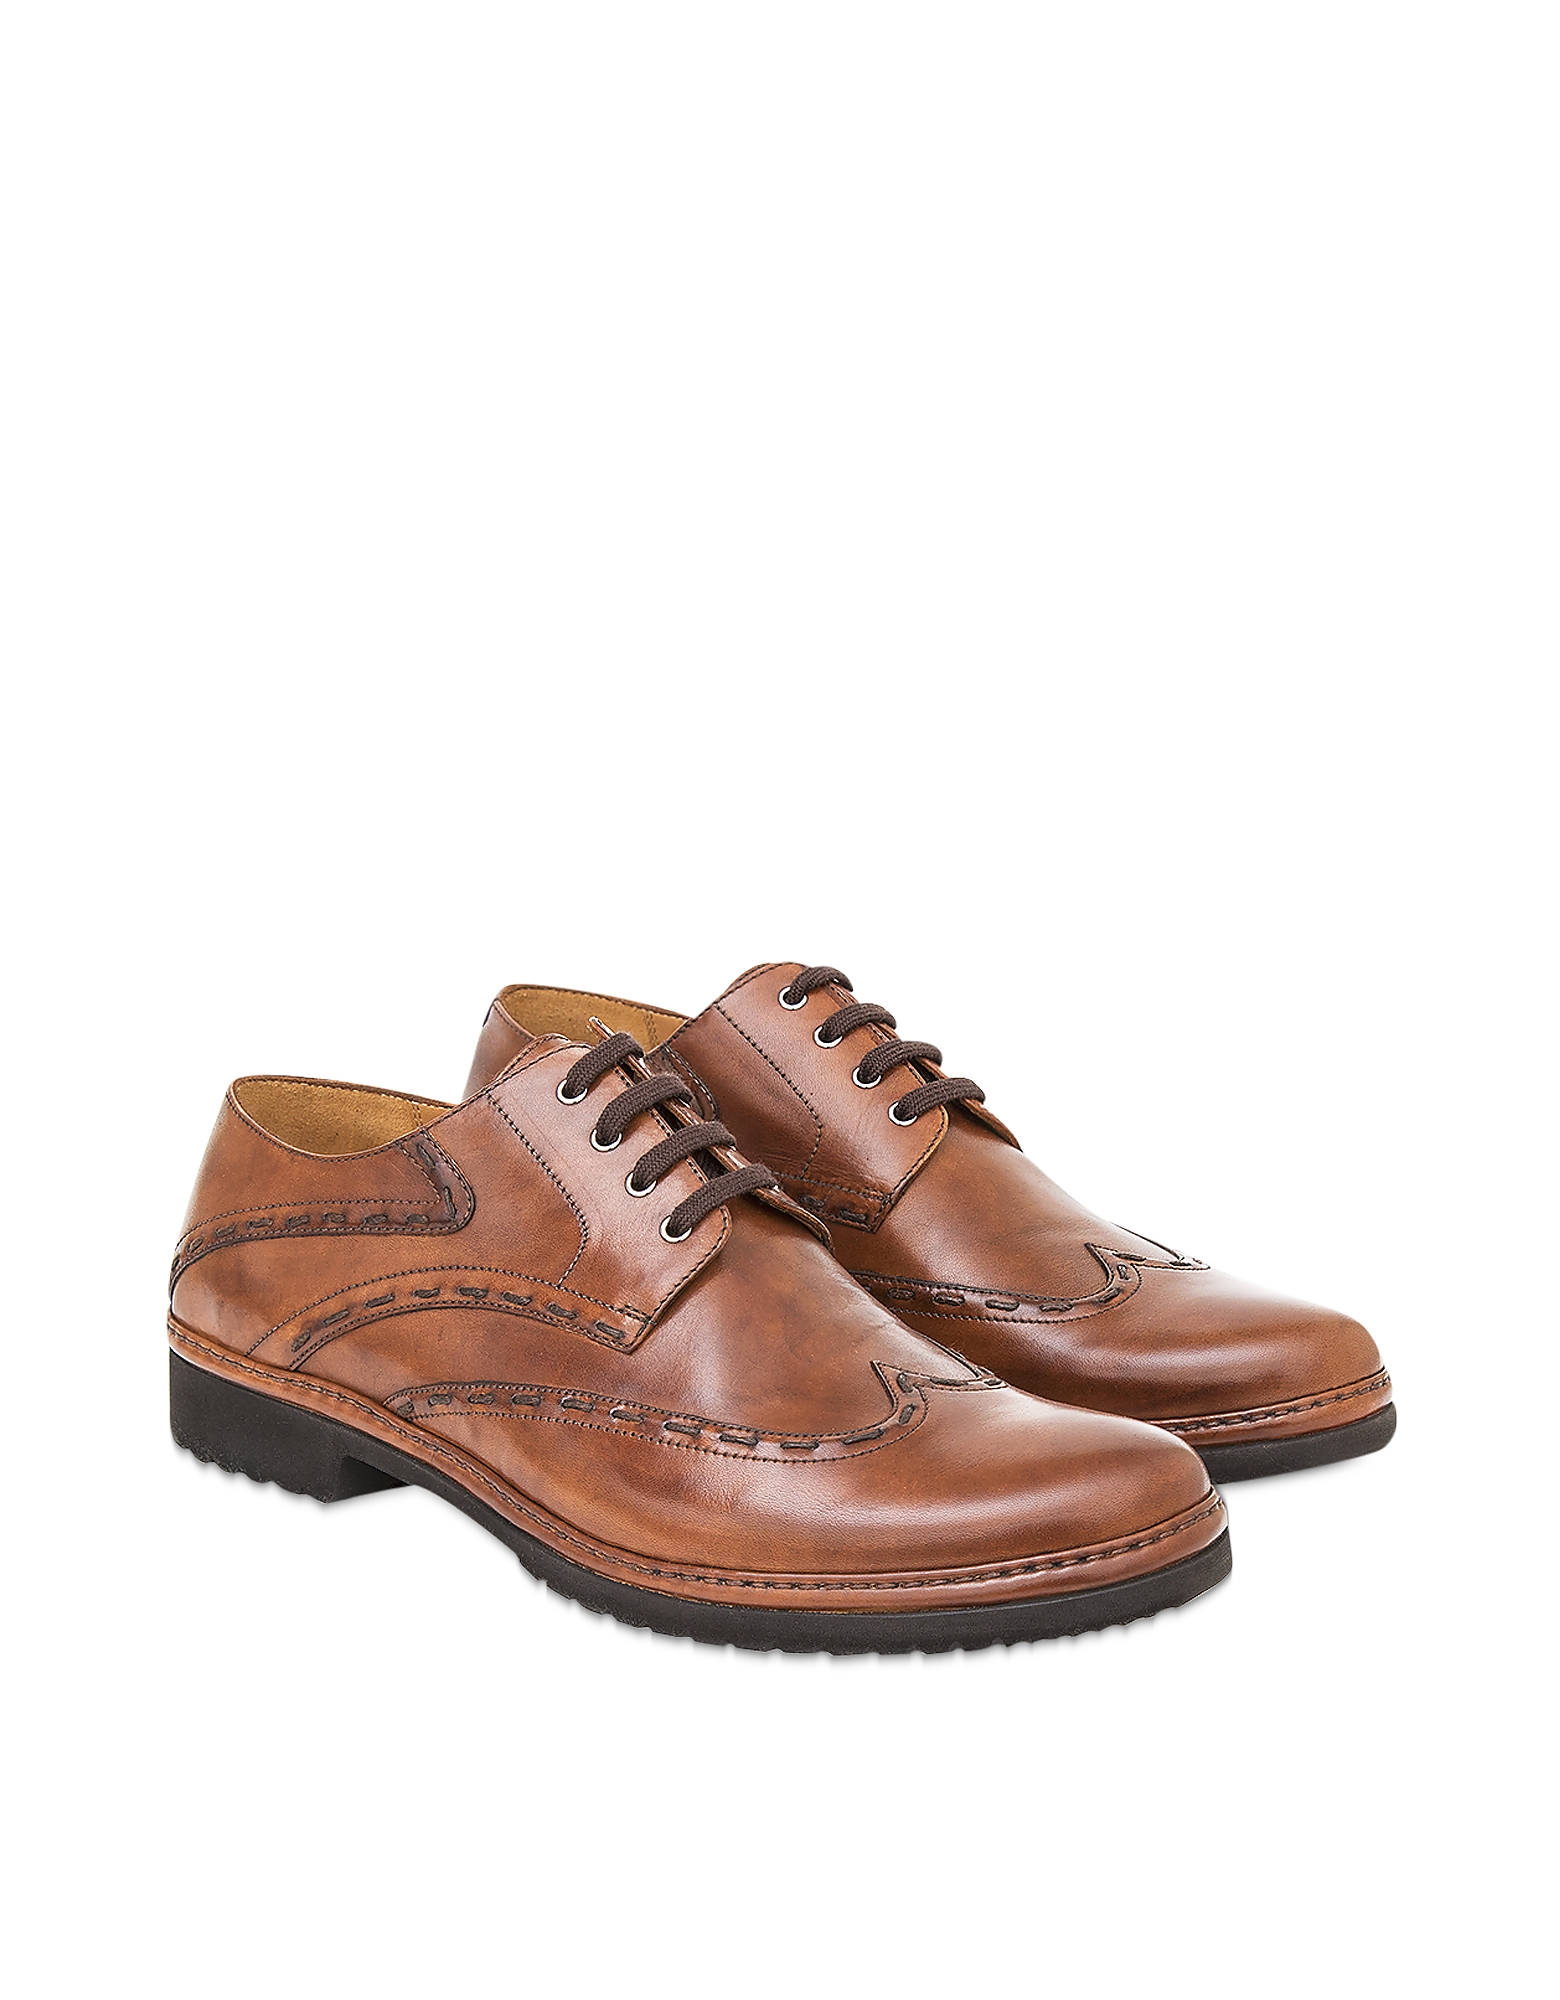 Pakerson Designer Shoes, Tan Cortona Derby Shoe